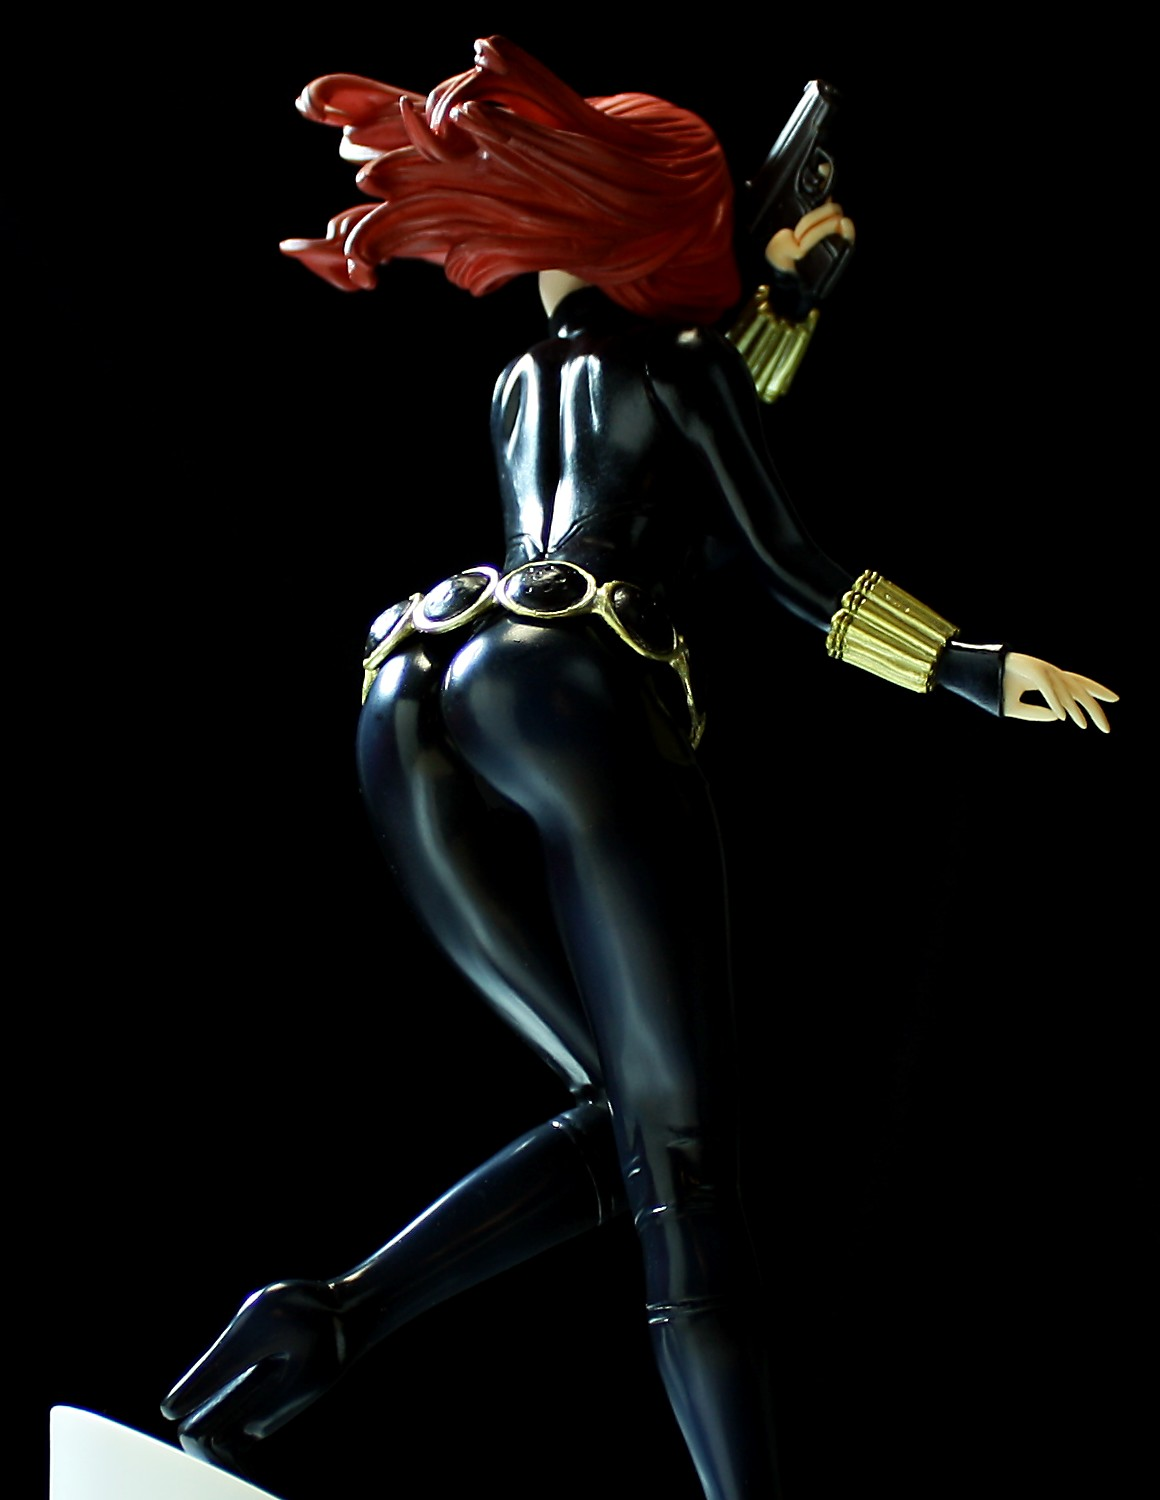 black widow from marvel comics tentacle armada. Black Bedroom Furniture Sets. Home Design Ideas